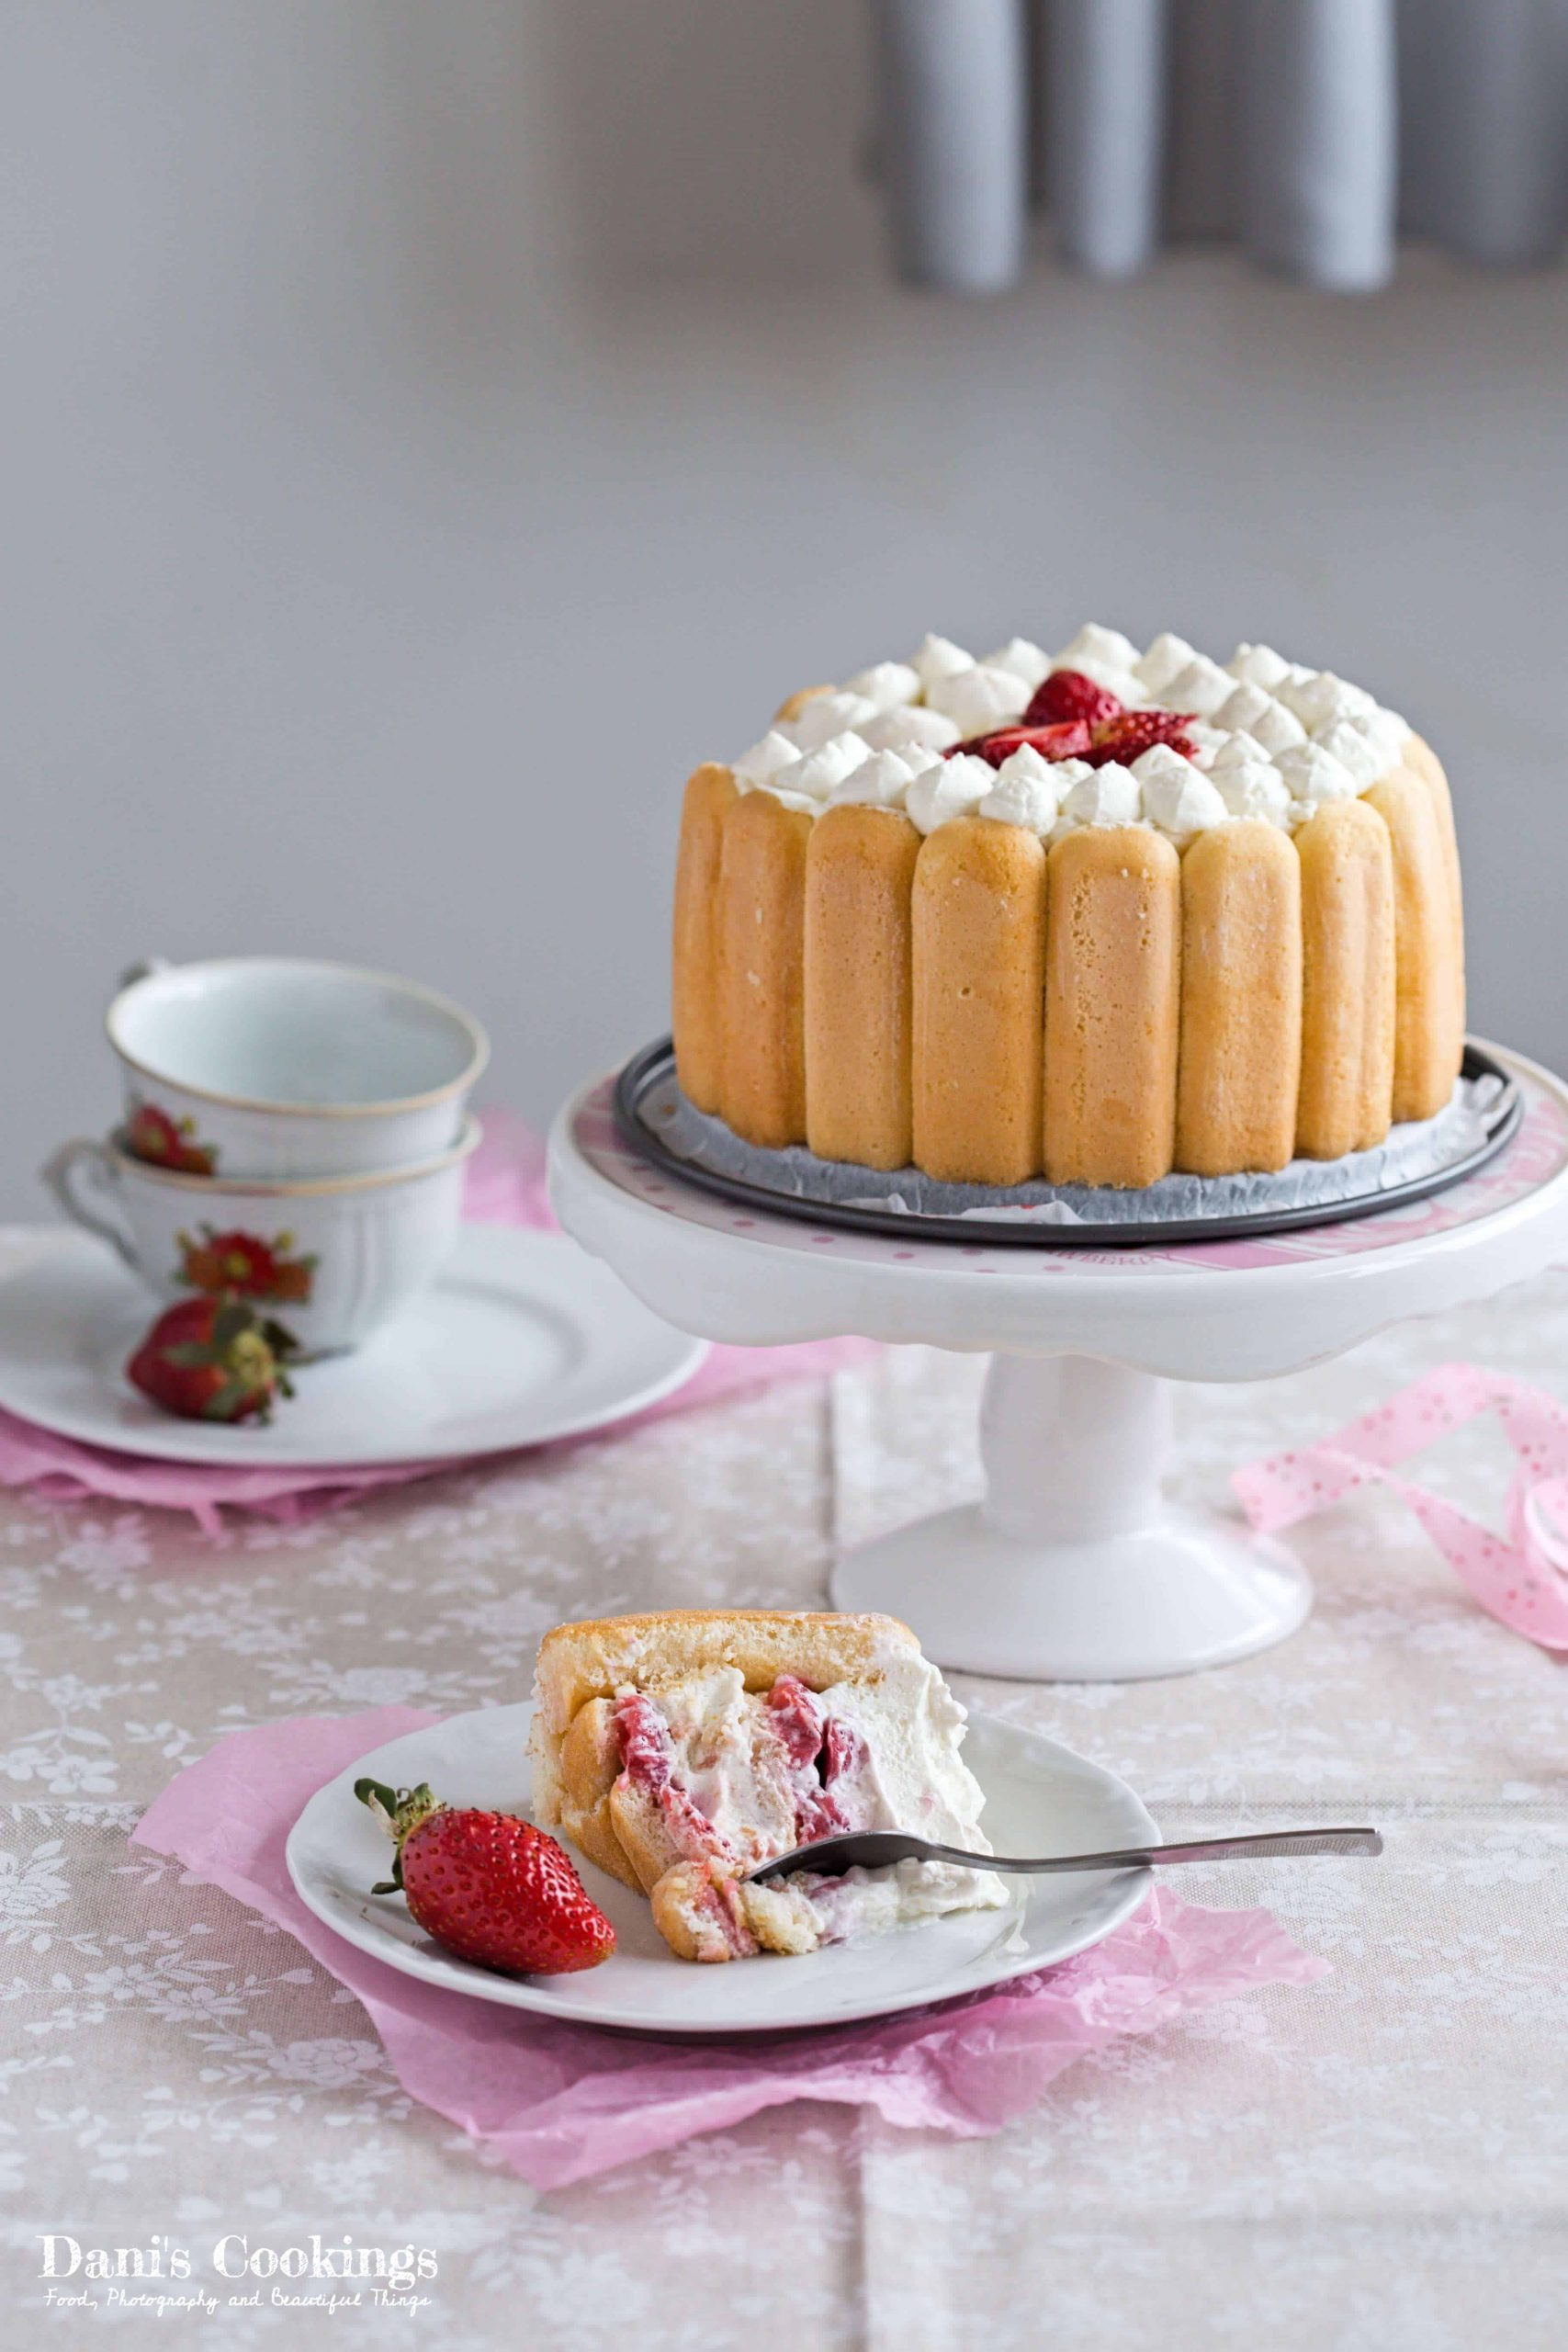 a slice of strawberry charlotte next to the whole cake